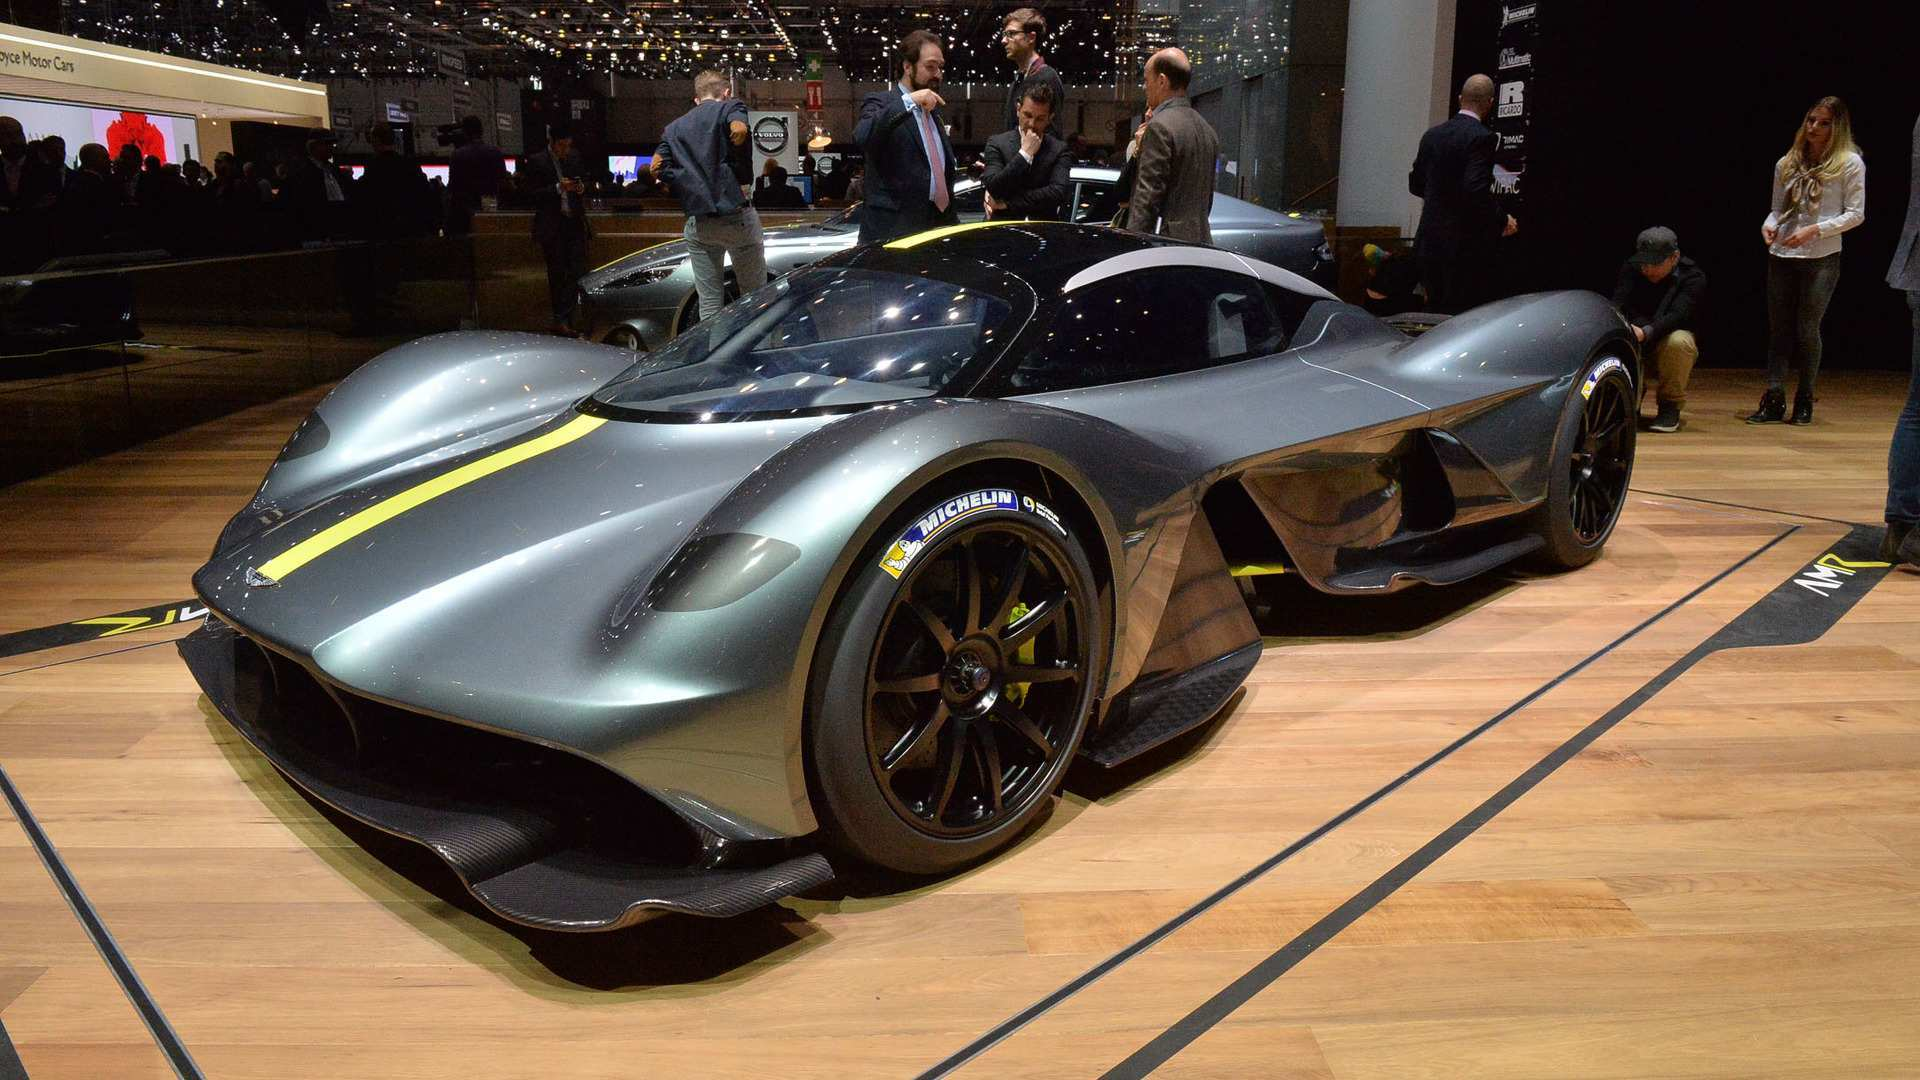 79 The Best 2019 Aston Martin Valkyrie Exterior